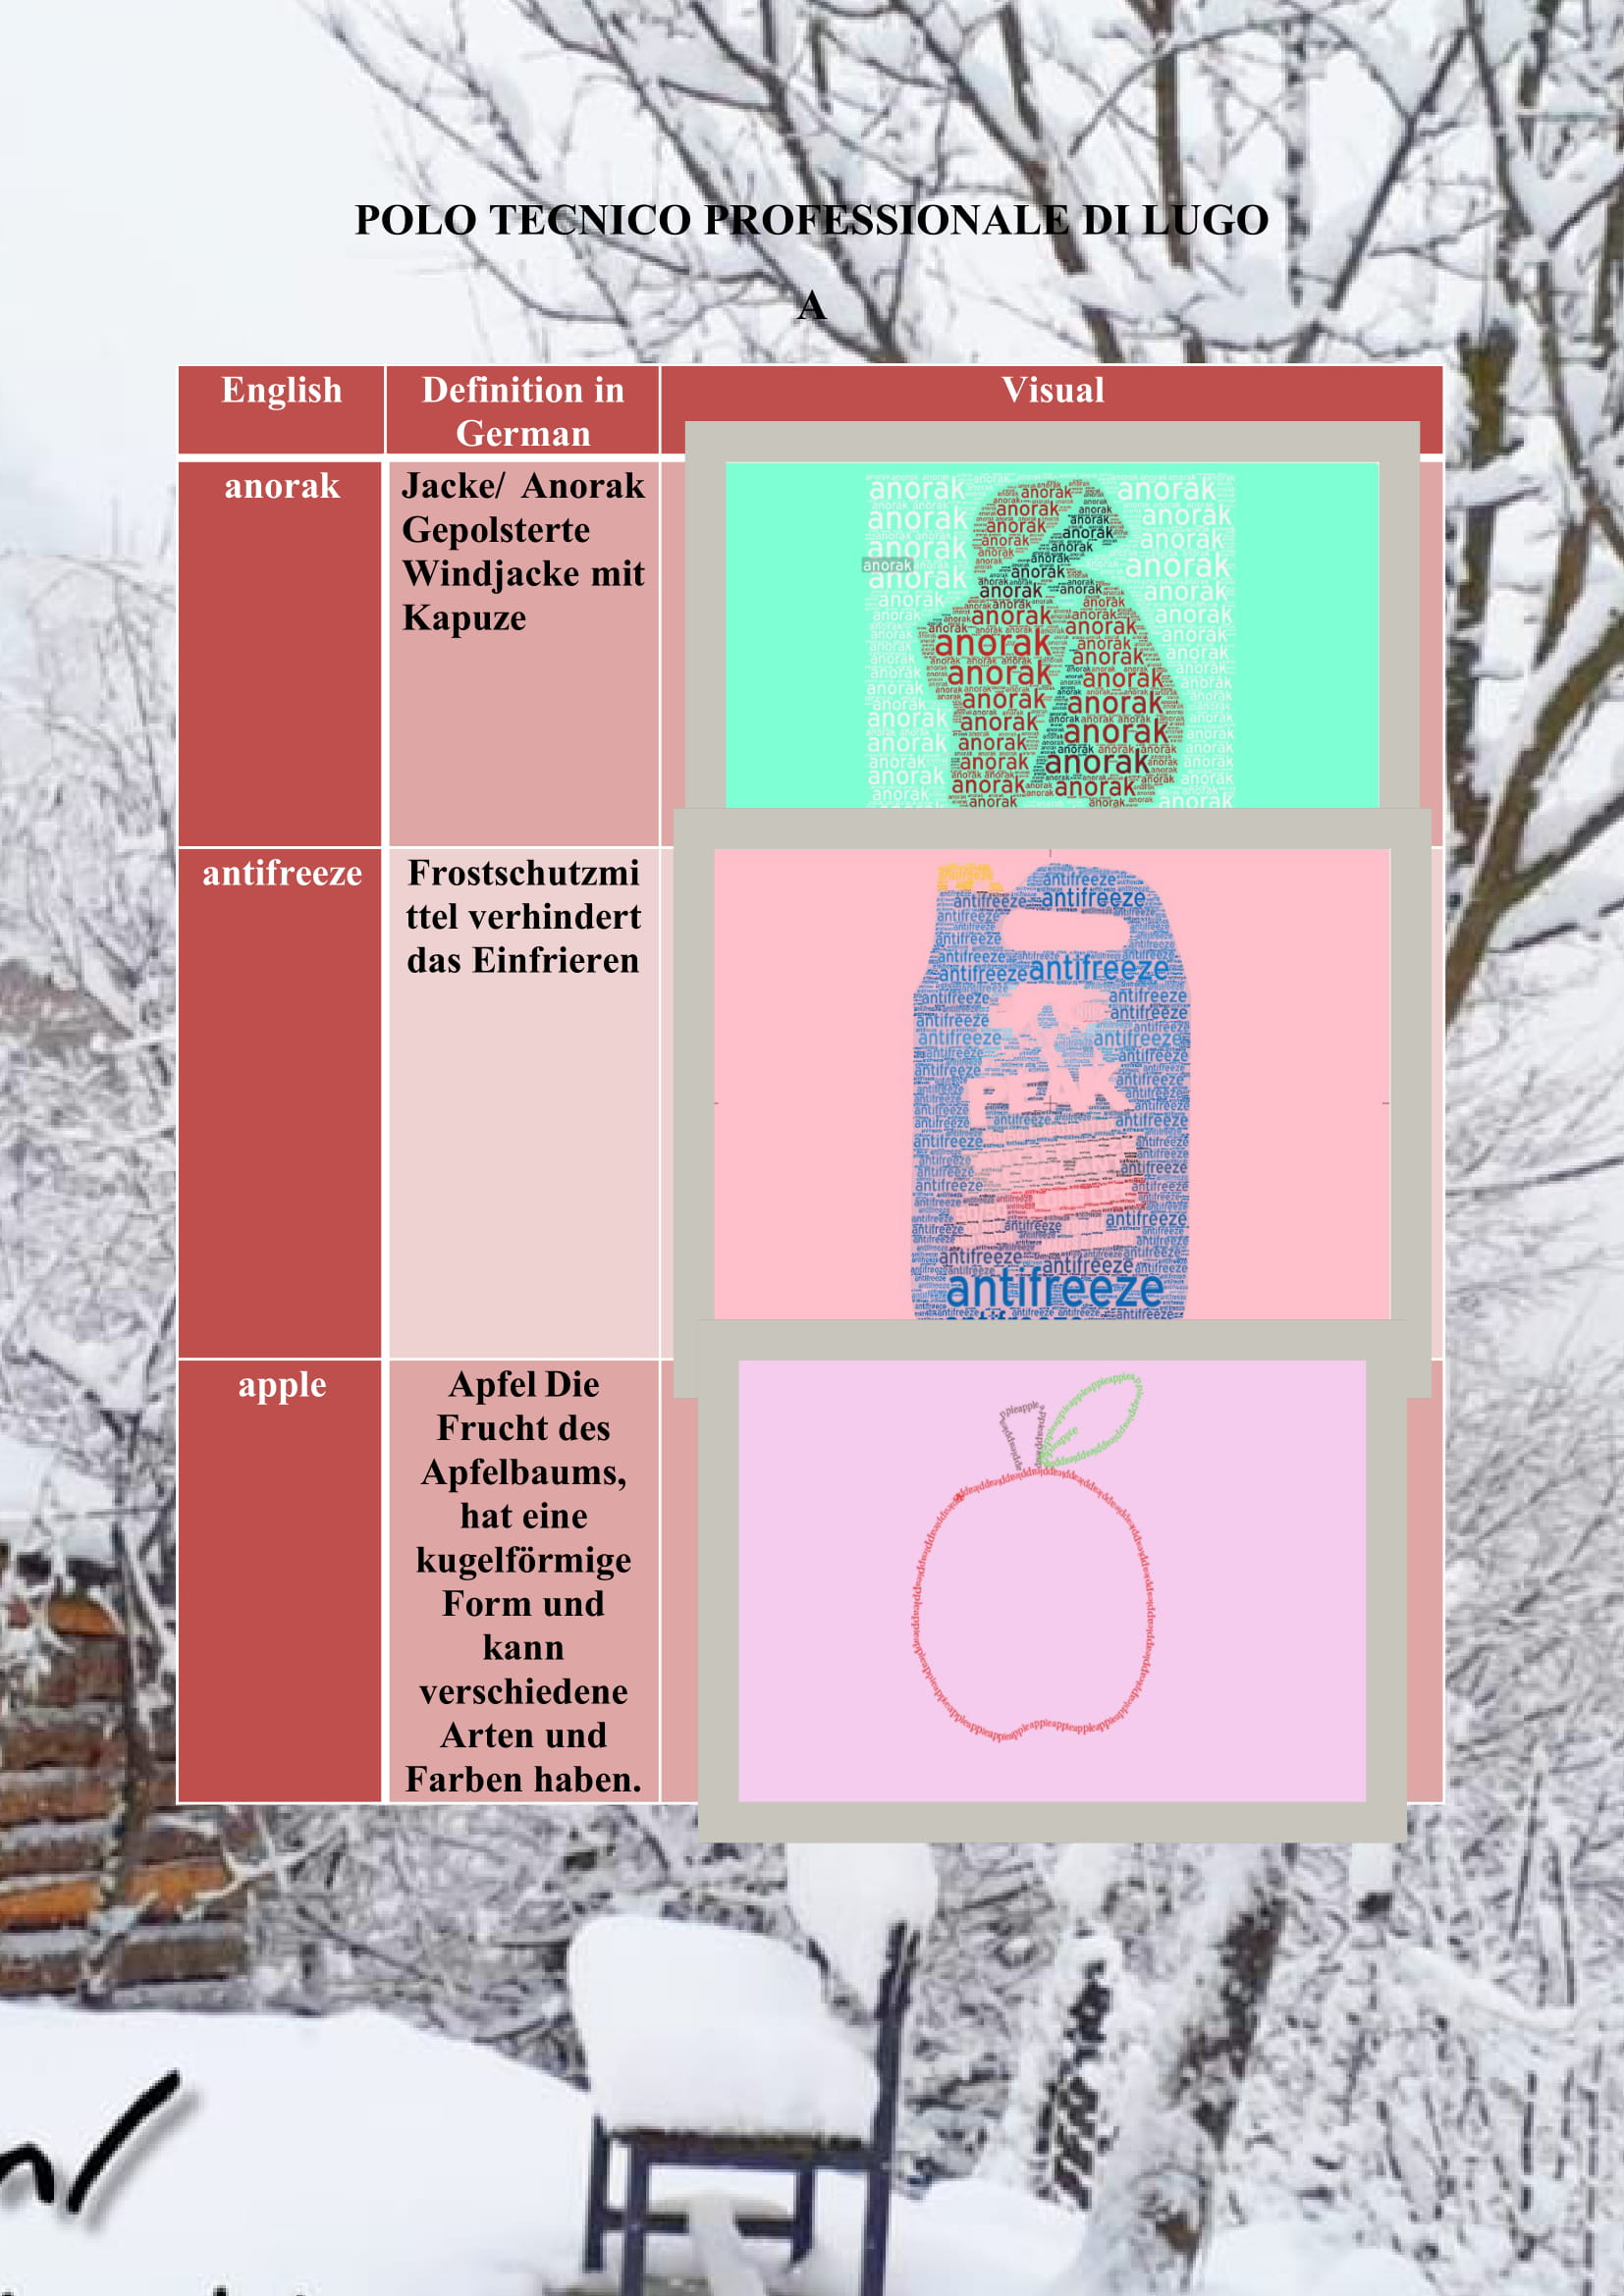 WINTER ITEMS DICTIONARY by mine seyhan - Illustrated by Mine Seyhan - Ourboox.com